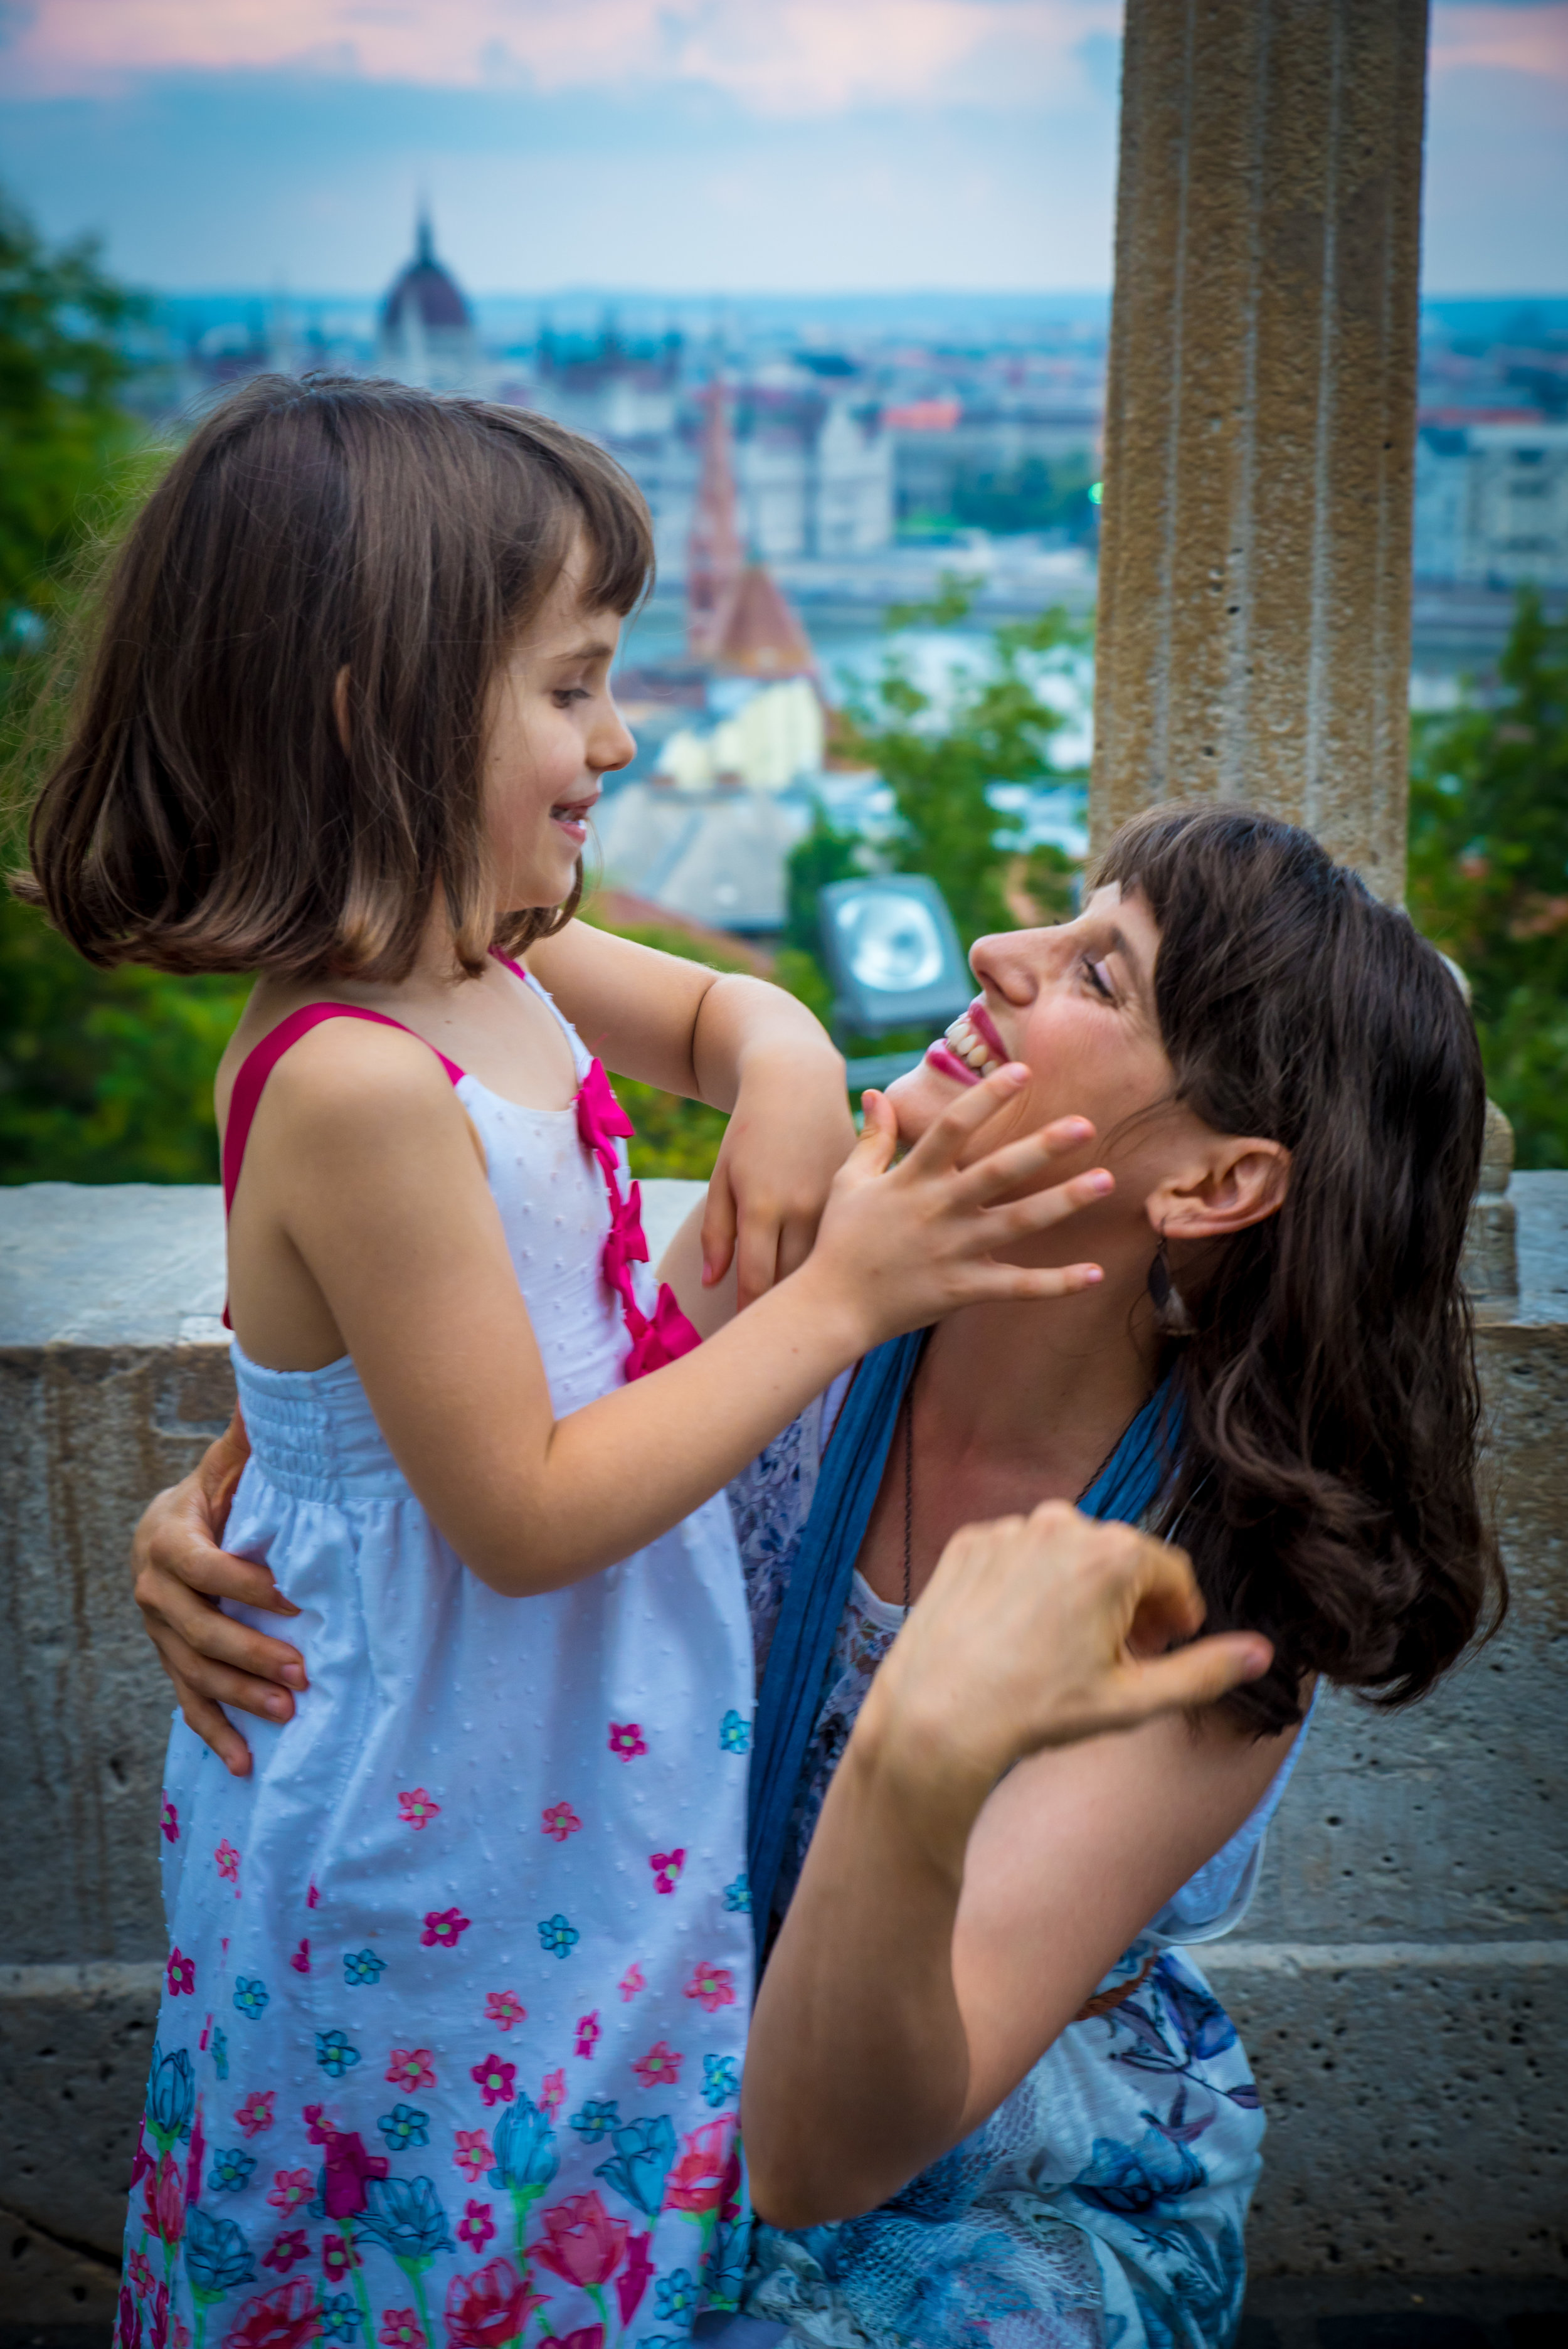 Summer 2018 in Budapest with Miss Lilla